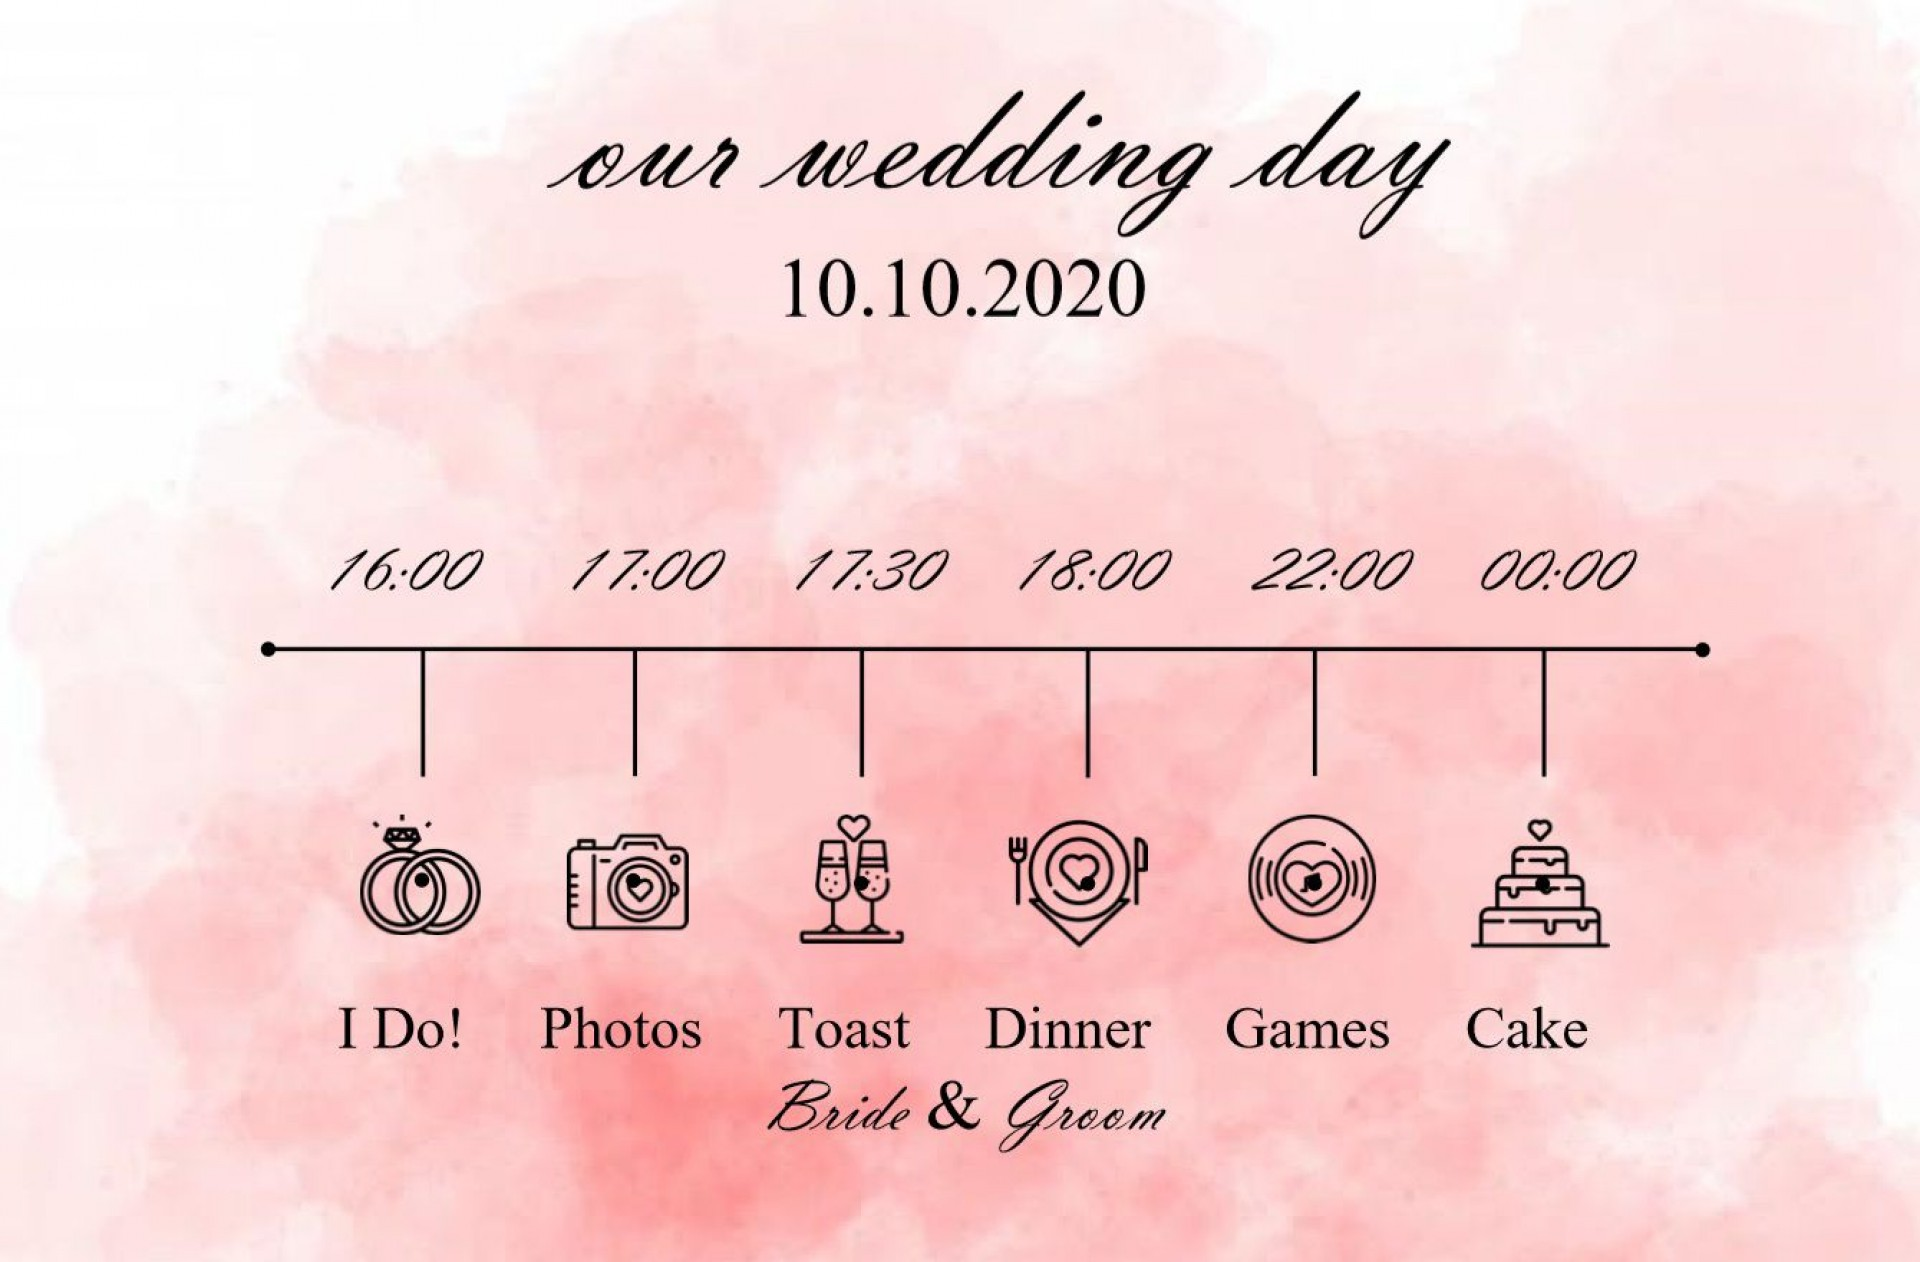 005 Incredible Wedding Timeline Template Free Concept  Day Excel Program1920